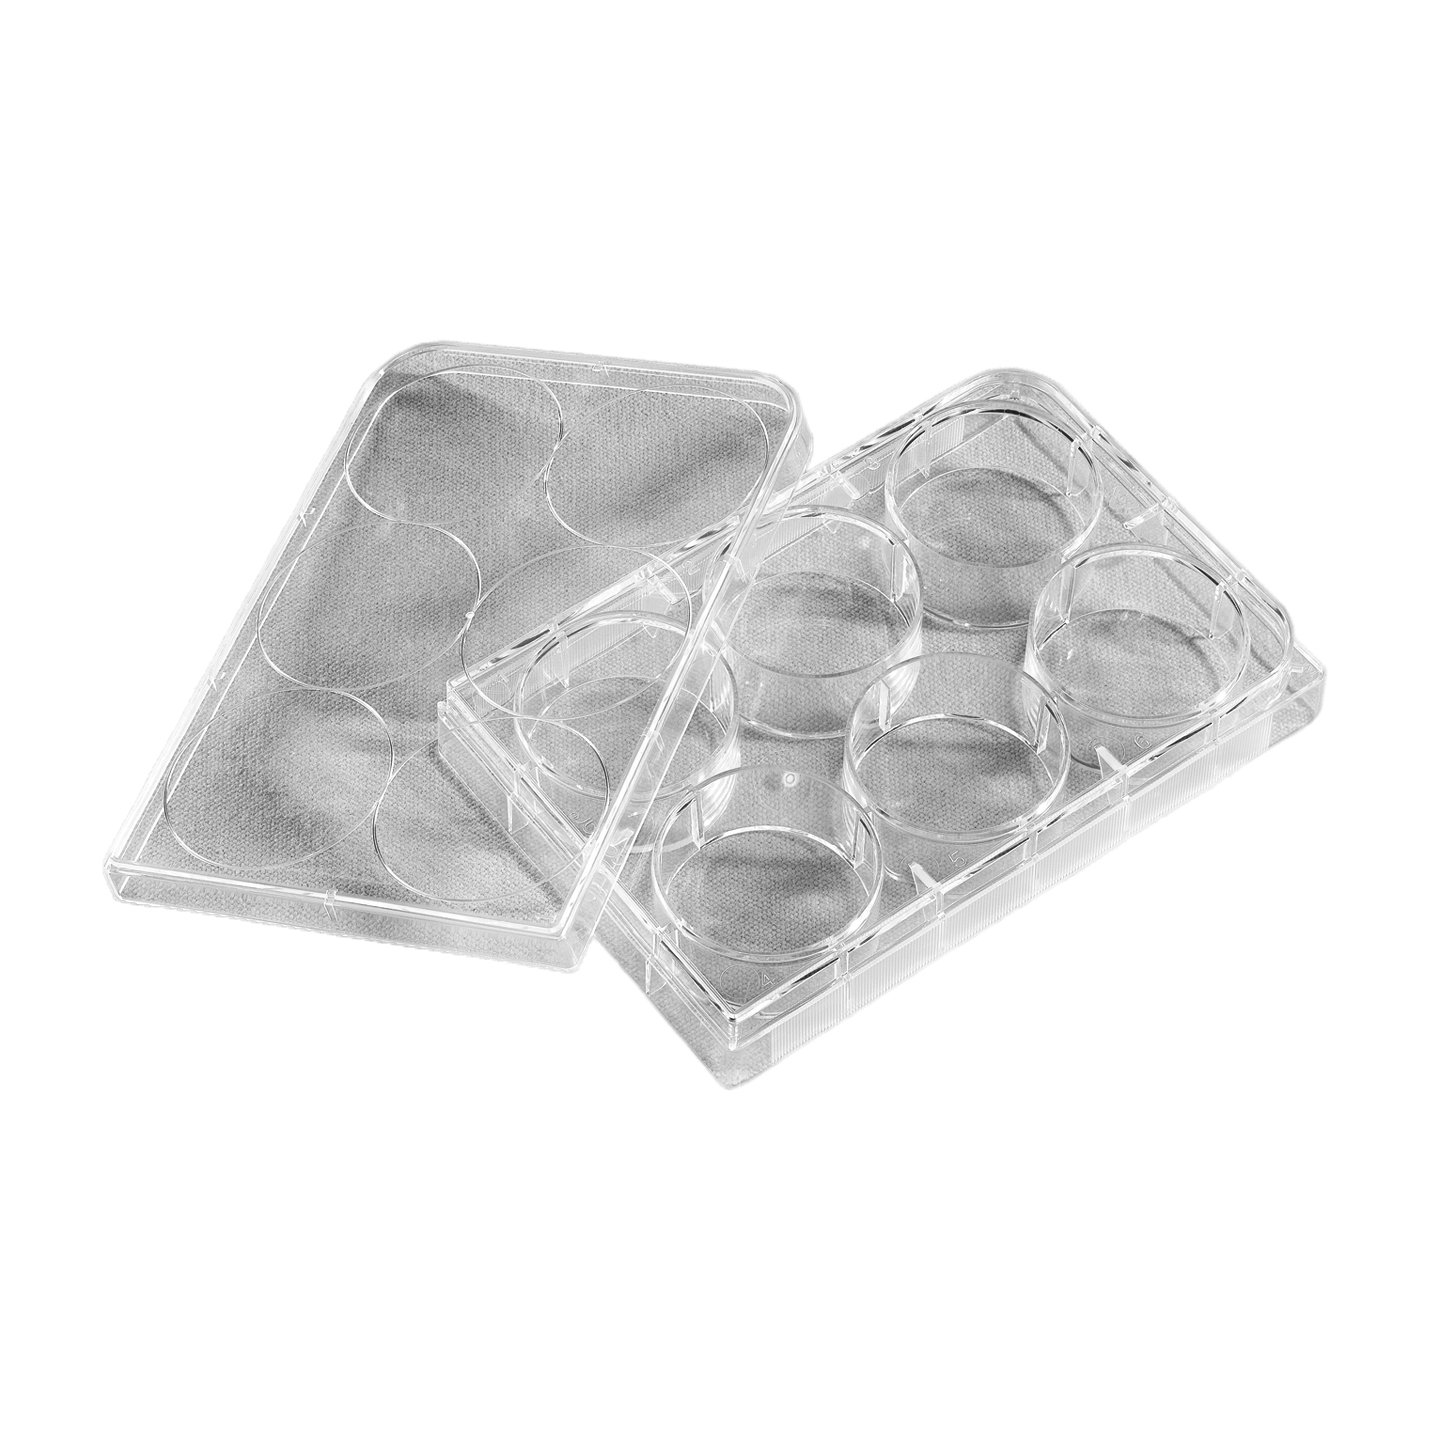 Corning Costar 3516 Polystyrene Sterile Clear Flat Bottom TC-Treated Multiple Well Plate with 6 Wells and Lid, 16.8mL Well Volume, Individually Wrapped (Case of 50)